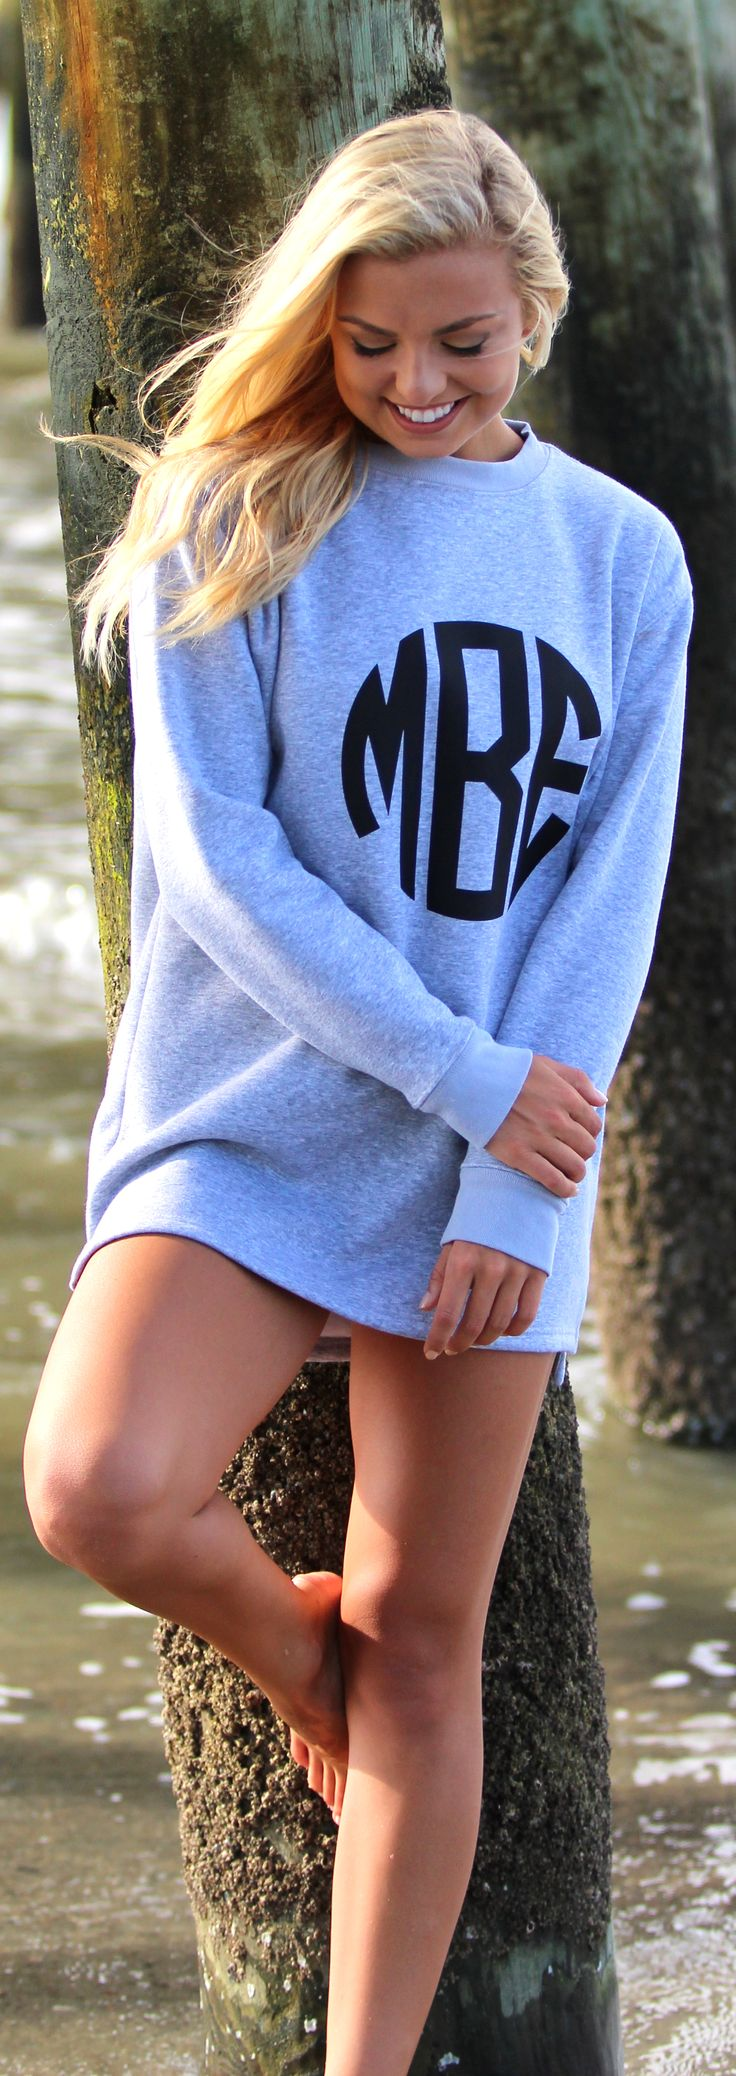 Windy days at the beach are even better in a comfy Monogrammed Sweatshirt! Shop now!